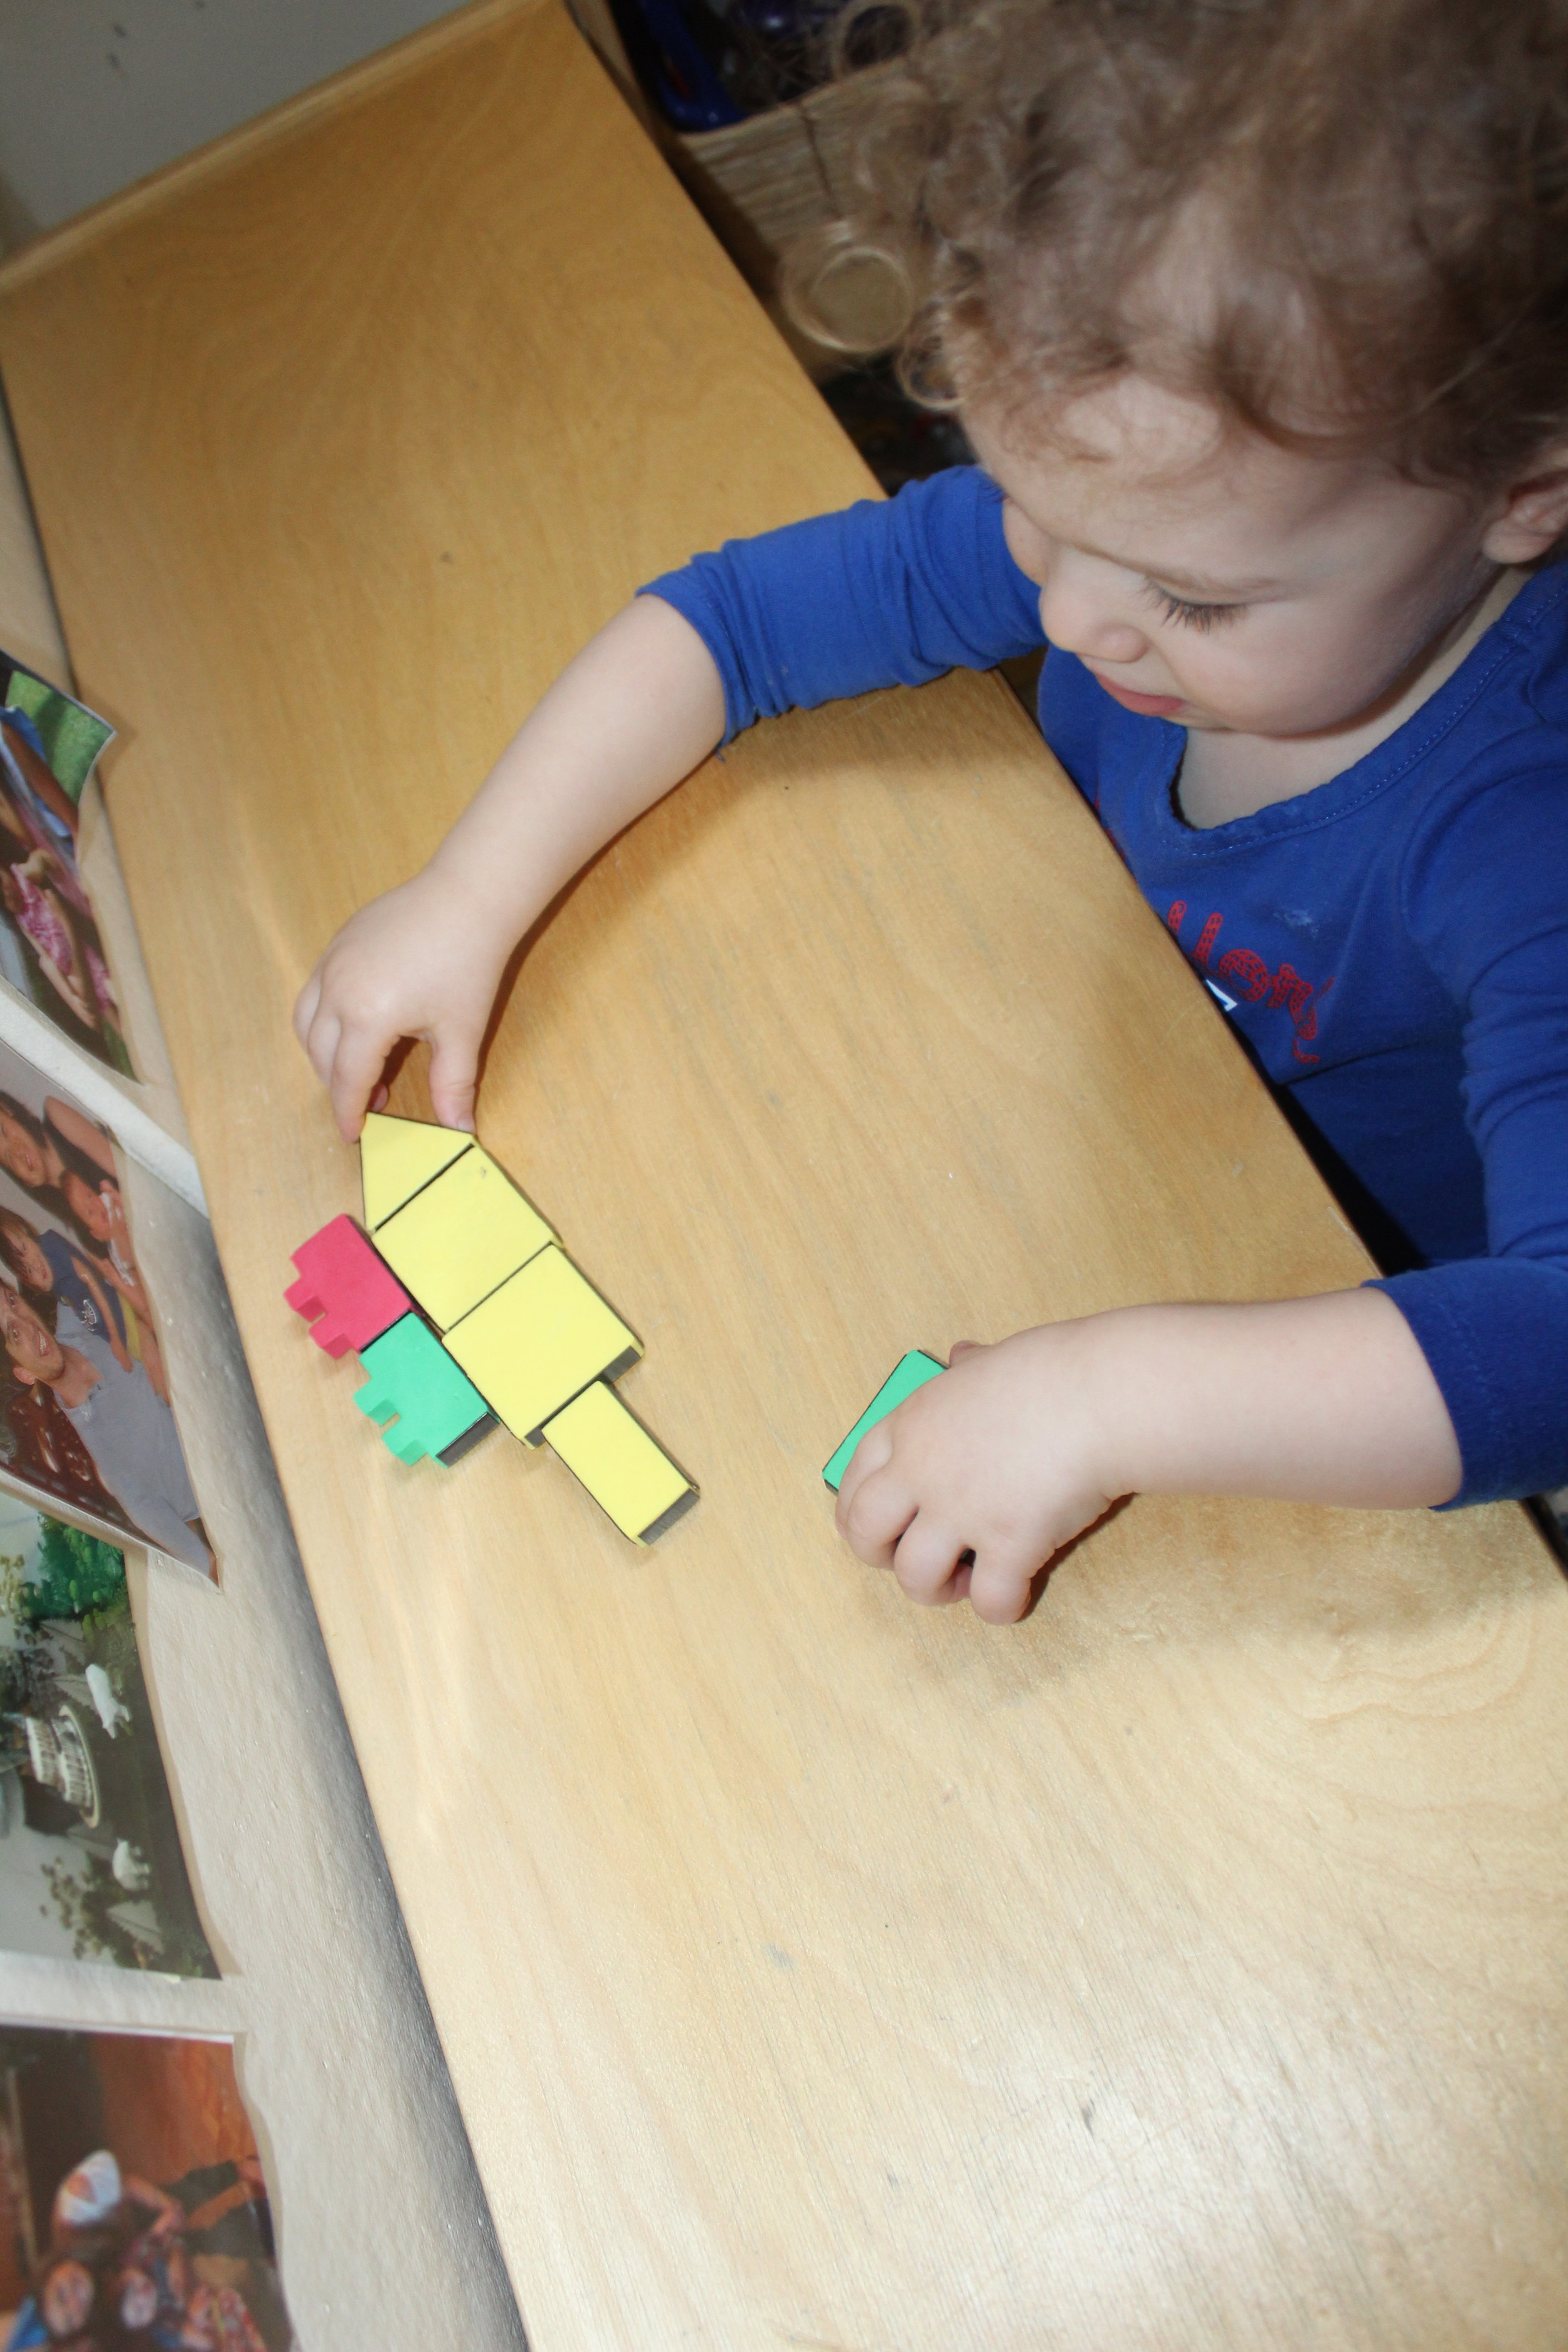 """As Remy connects the shape, she said """"Square shapes!! A house!"""""""